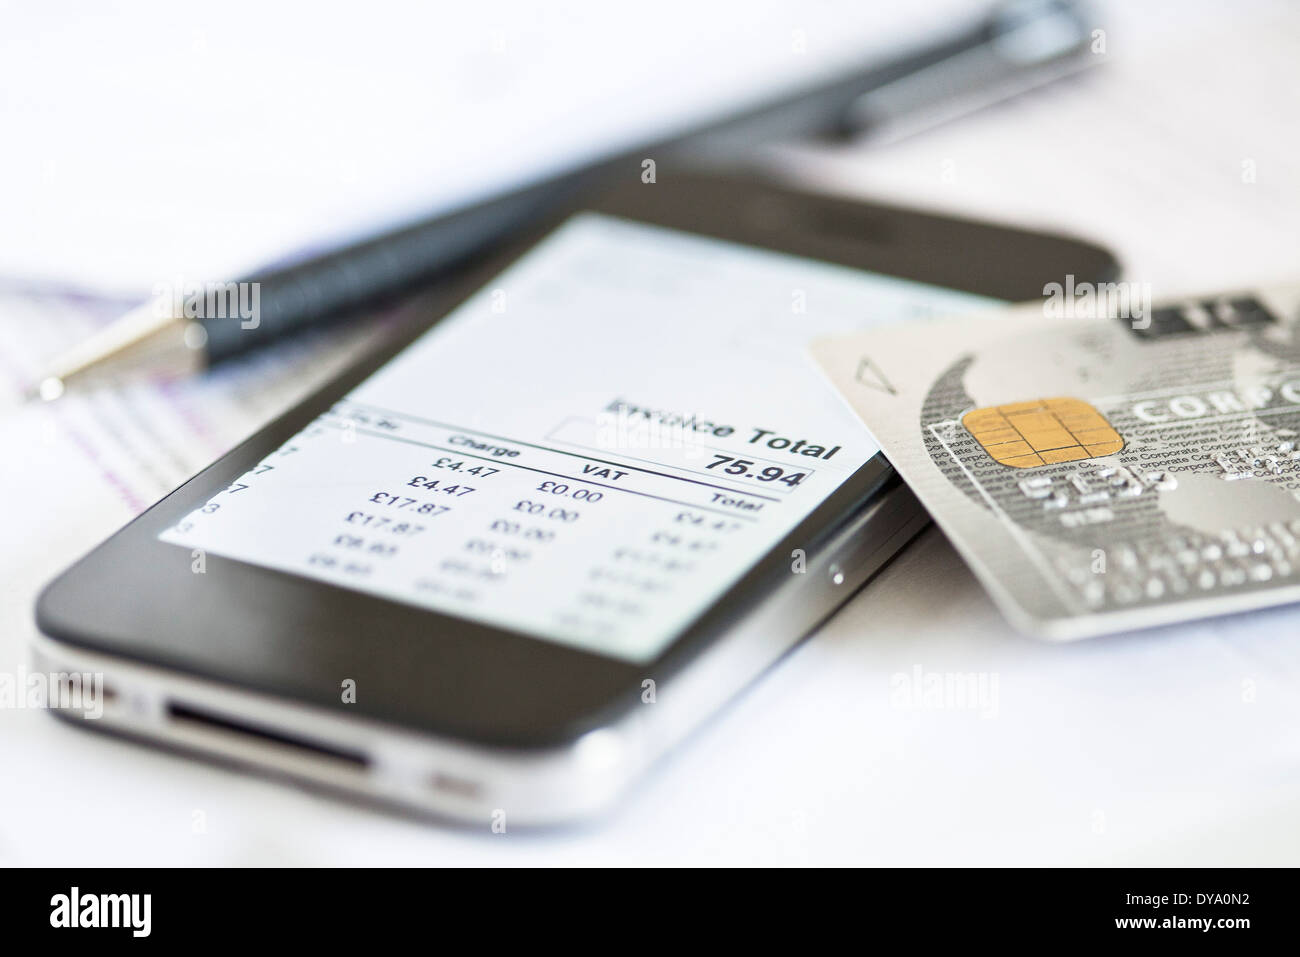 Smartphone being used for online banking - Stock Image